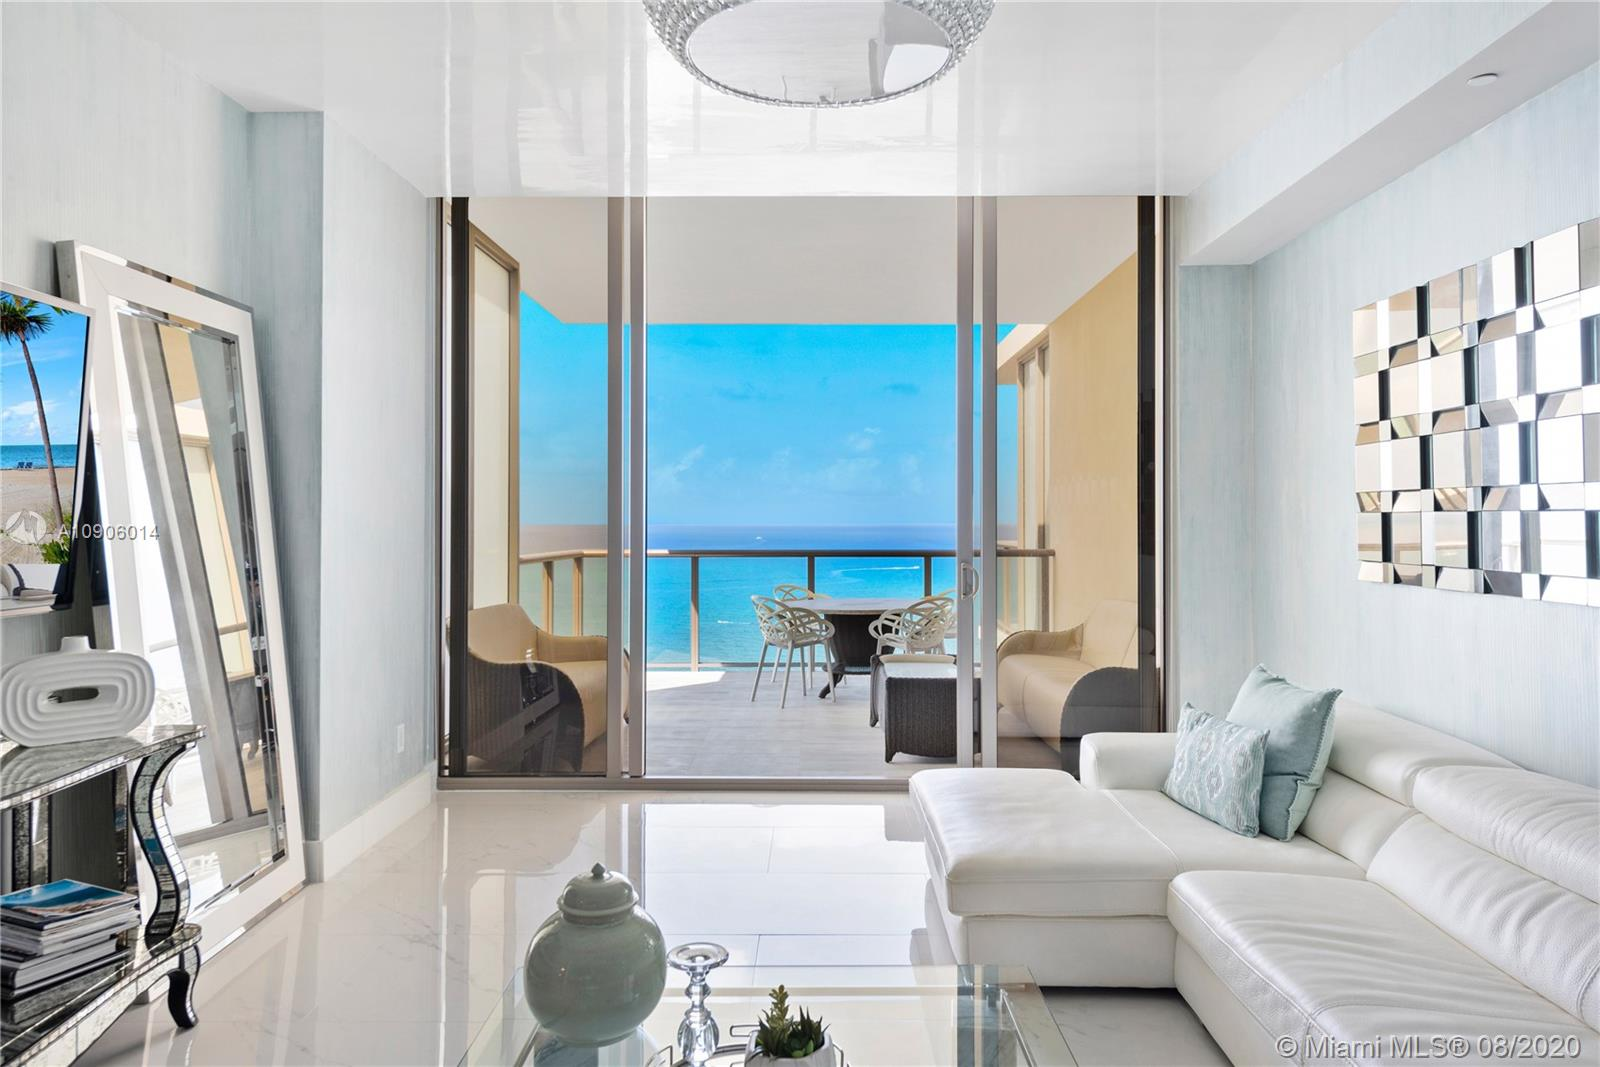 Endless direct ocean views from this spacious two bedroom residence at St. Regis Bal Harbour. Located across the street from the world famous Bal Harbour Shops and top restaurants and attractions. Enjoy the exclusive amenities at St. Regis including a private residence pool, a 14,000 Sq. Ft. Remede spa, State-of-the-art fitness center and more.